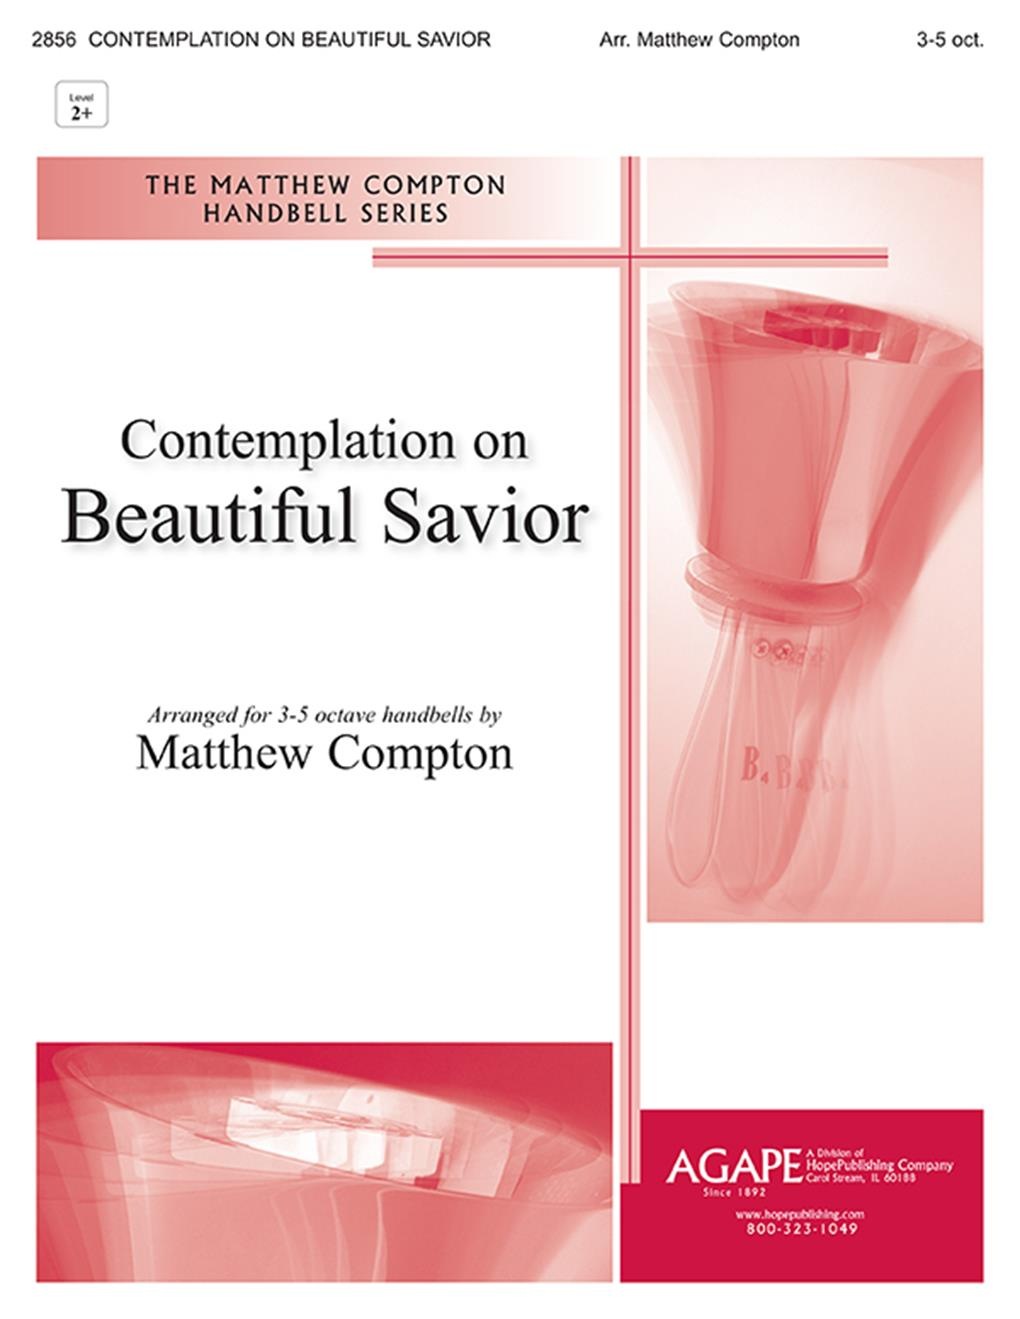 Comtemplation on Beautiful Savior-Cover Image